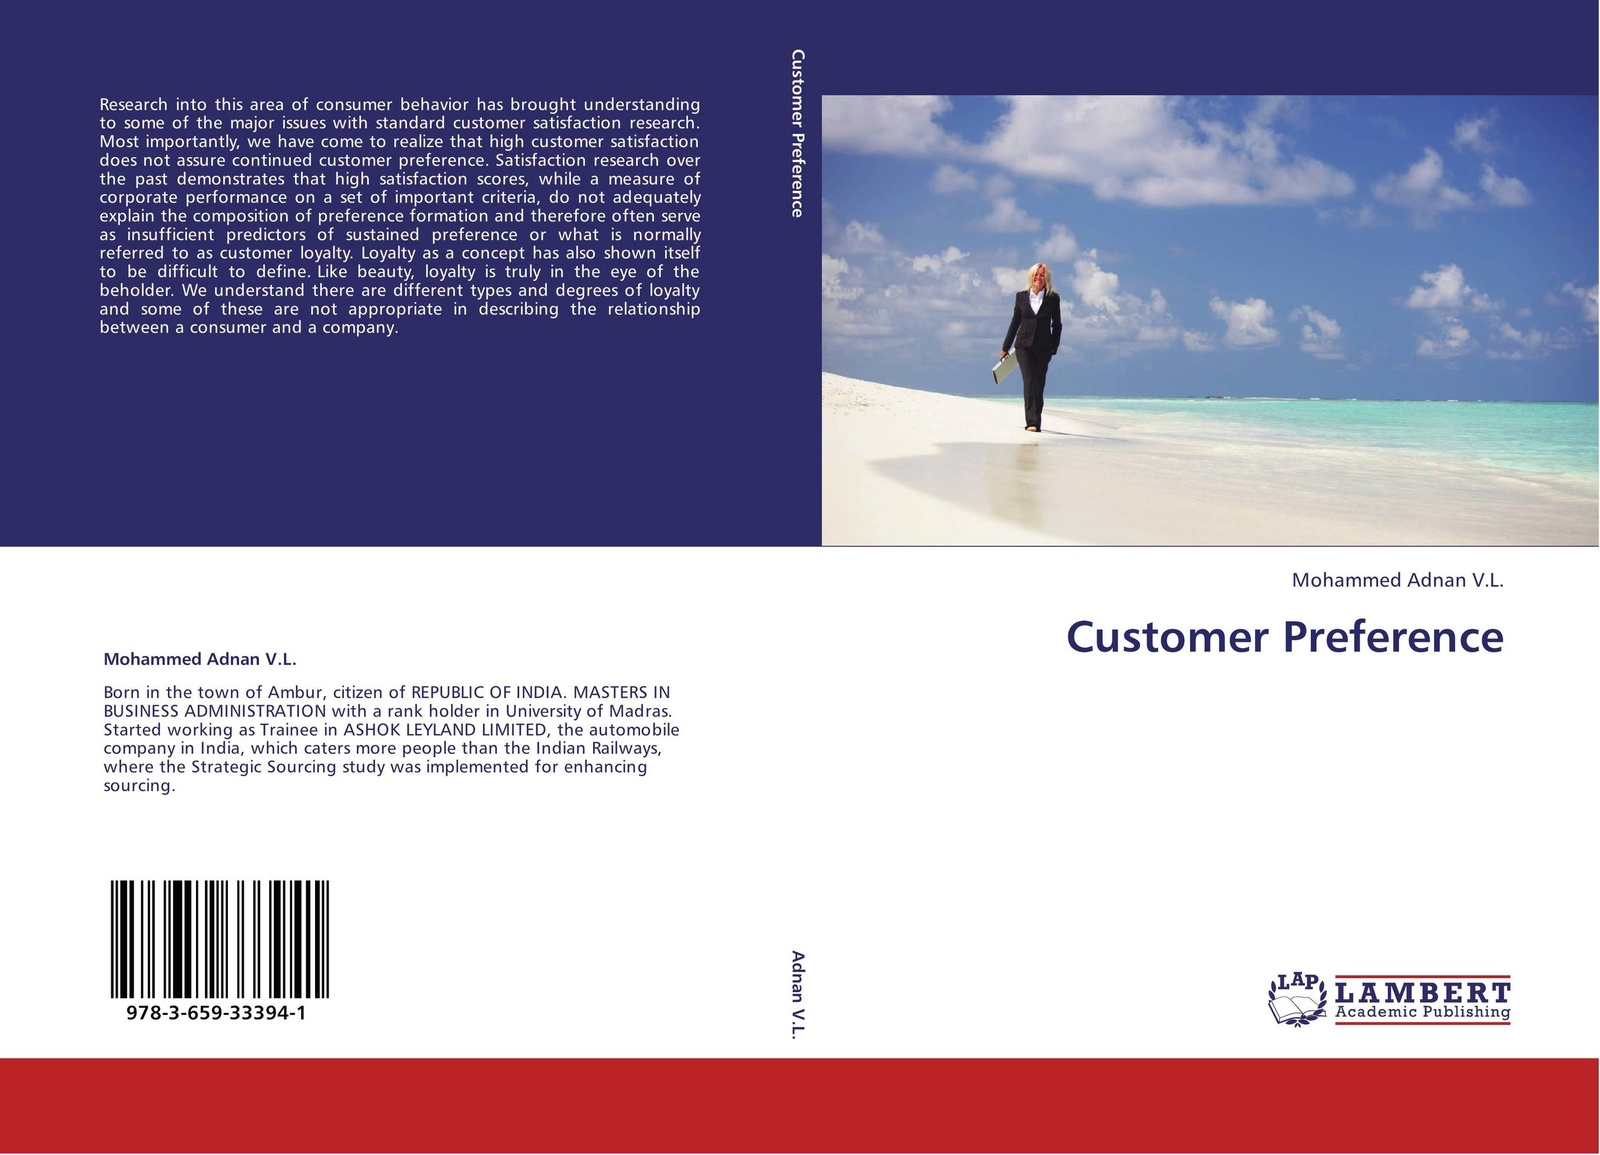 Mohammed Adnan V.L. Customer Preference wilfred ngesu mutua the learner customer support systems and satisfaction